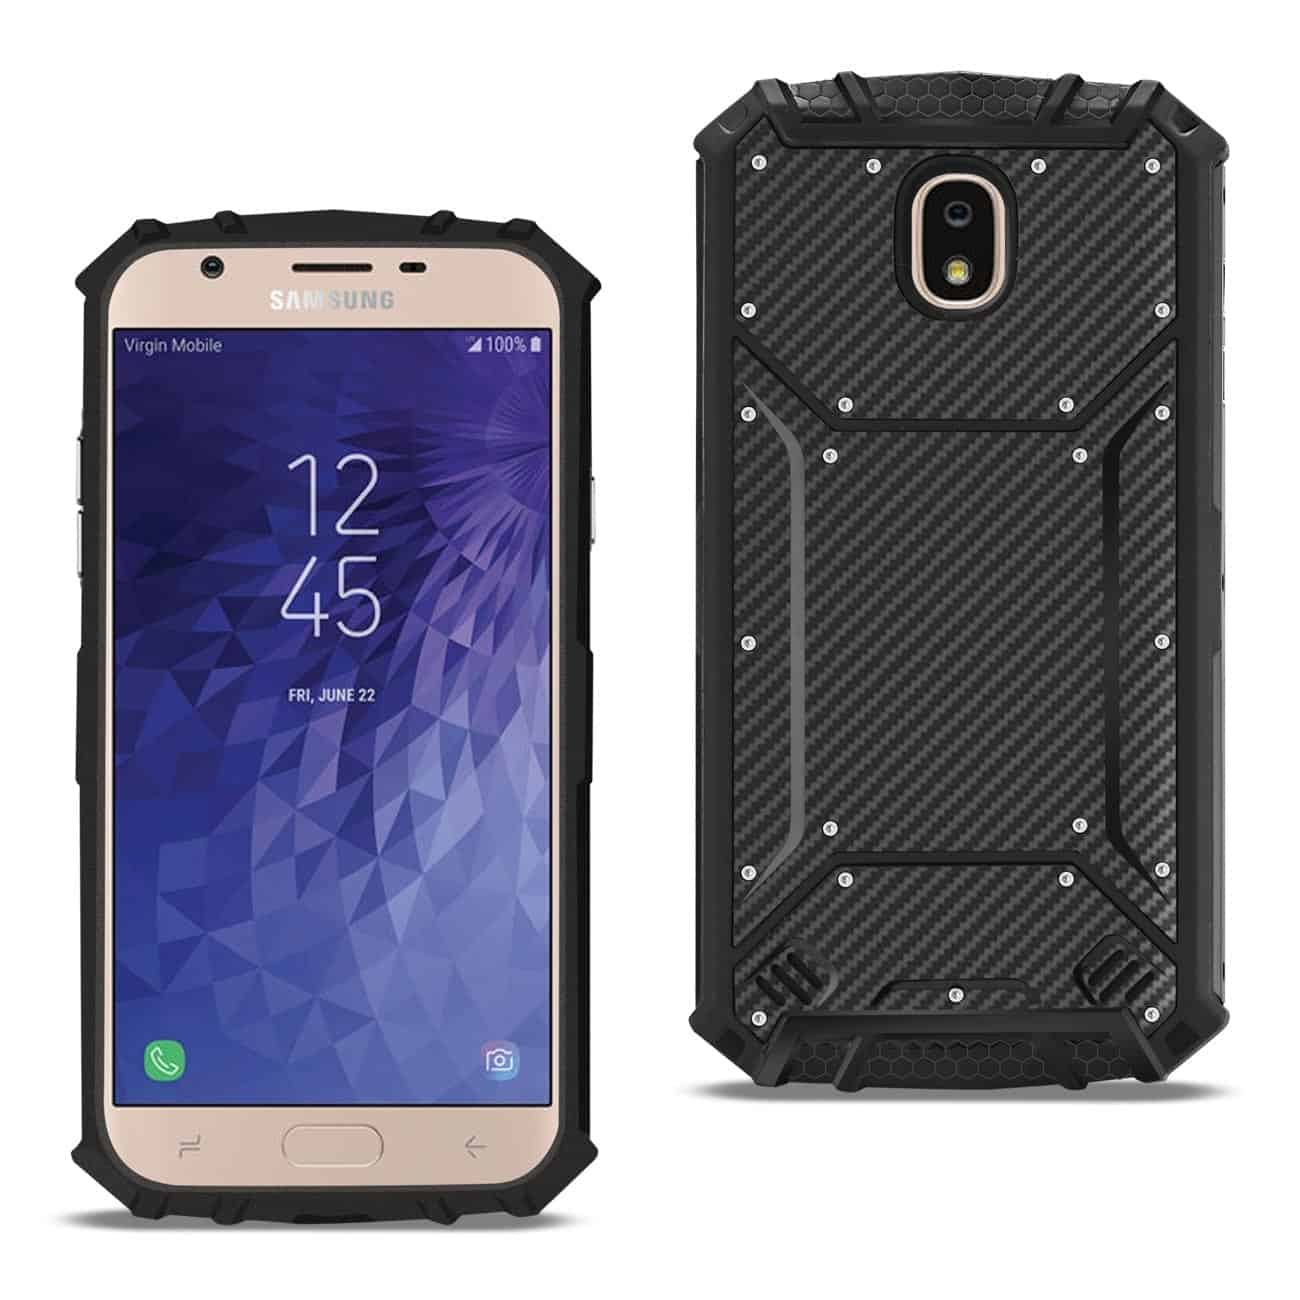 SAMSUNG GALAXY J3 (2018) Carbon Fiber Hard-shell Case In Black